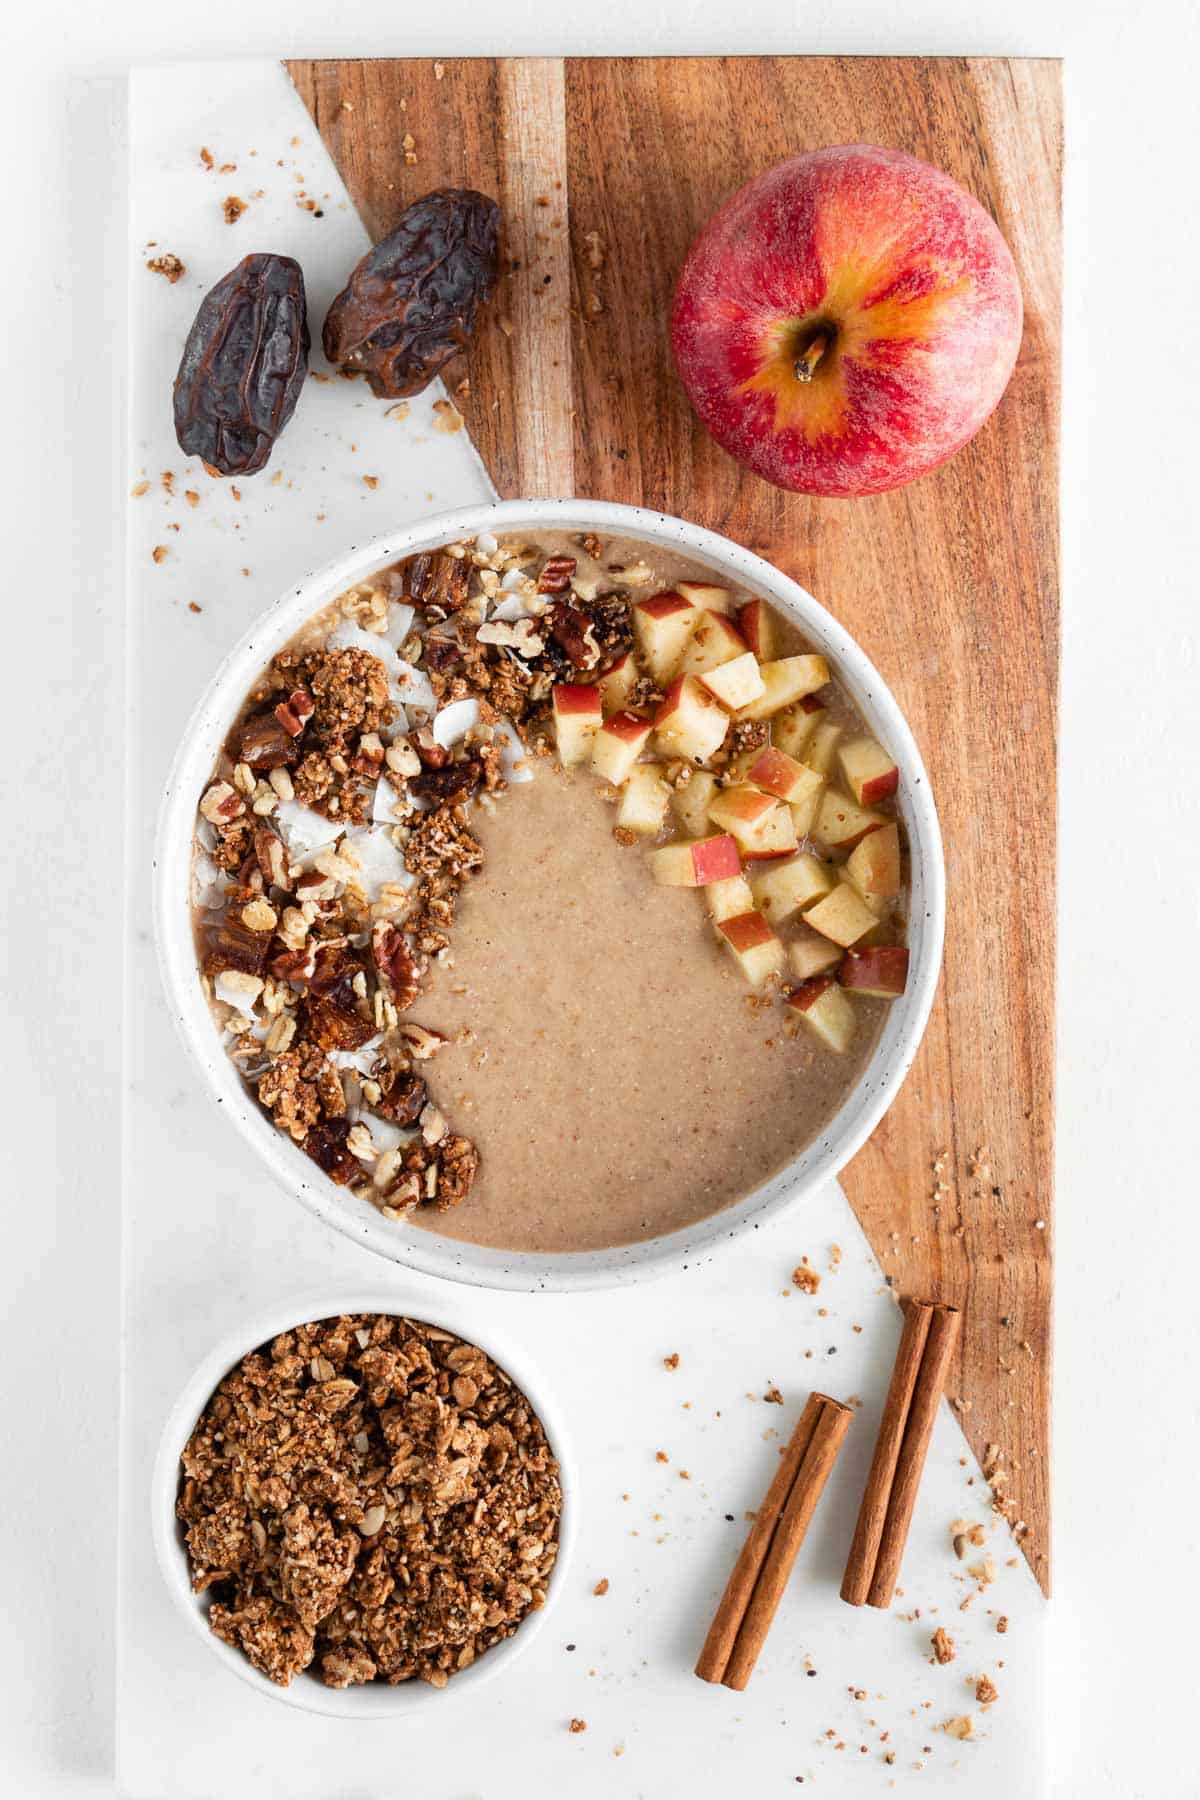 apple pie smoothie bowl, granola, apples, medjool dates, and cinnamon sticks on a marble board